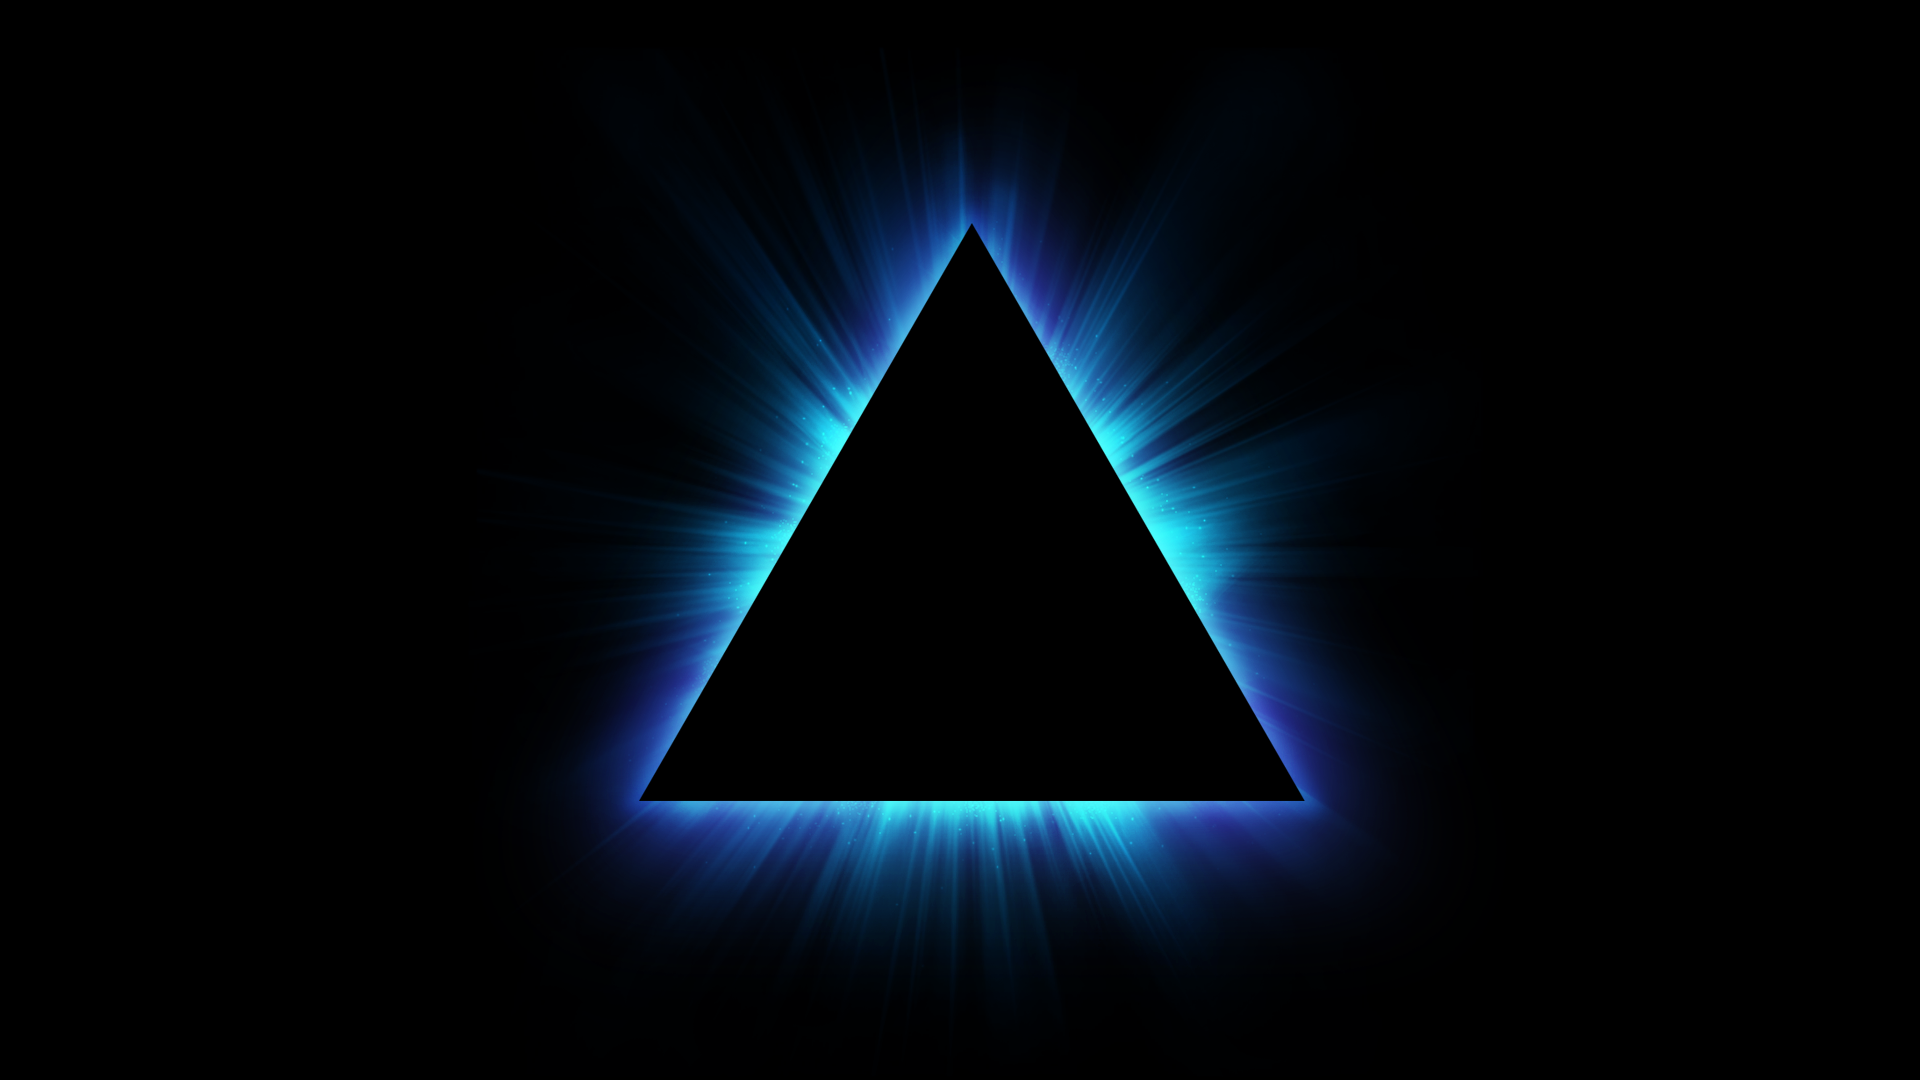 Illuminati Triangle Wallpaper